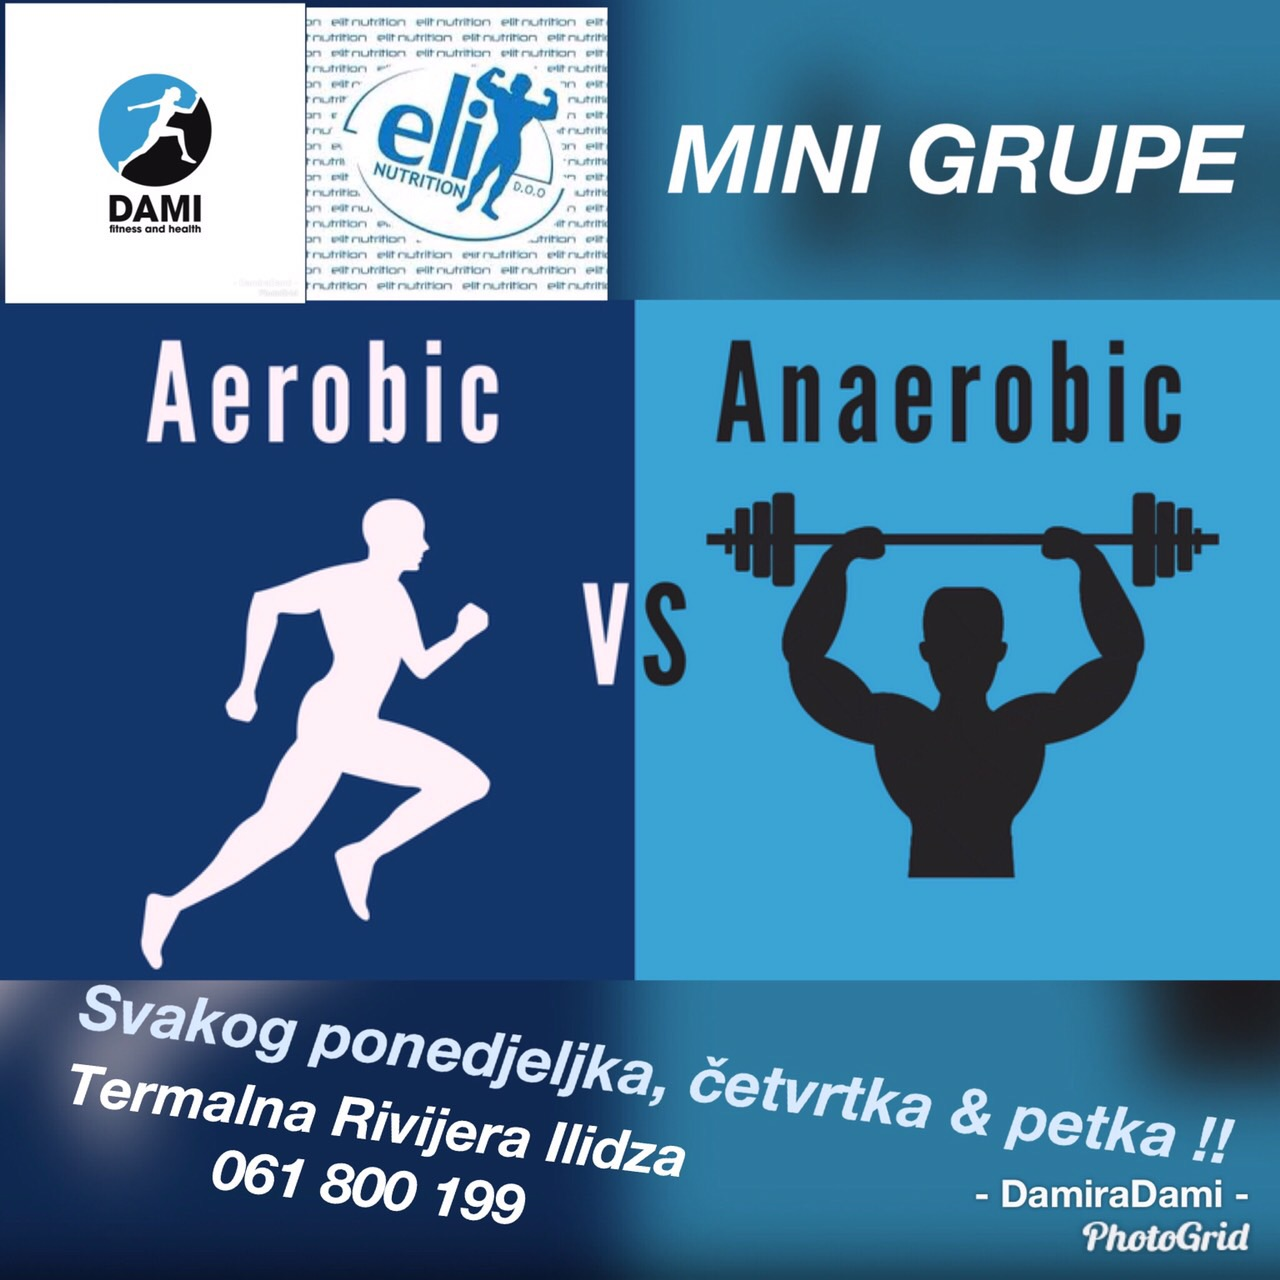 Aerobic vs Anaerobic